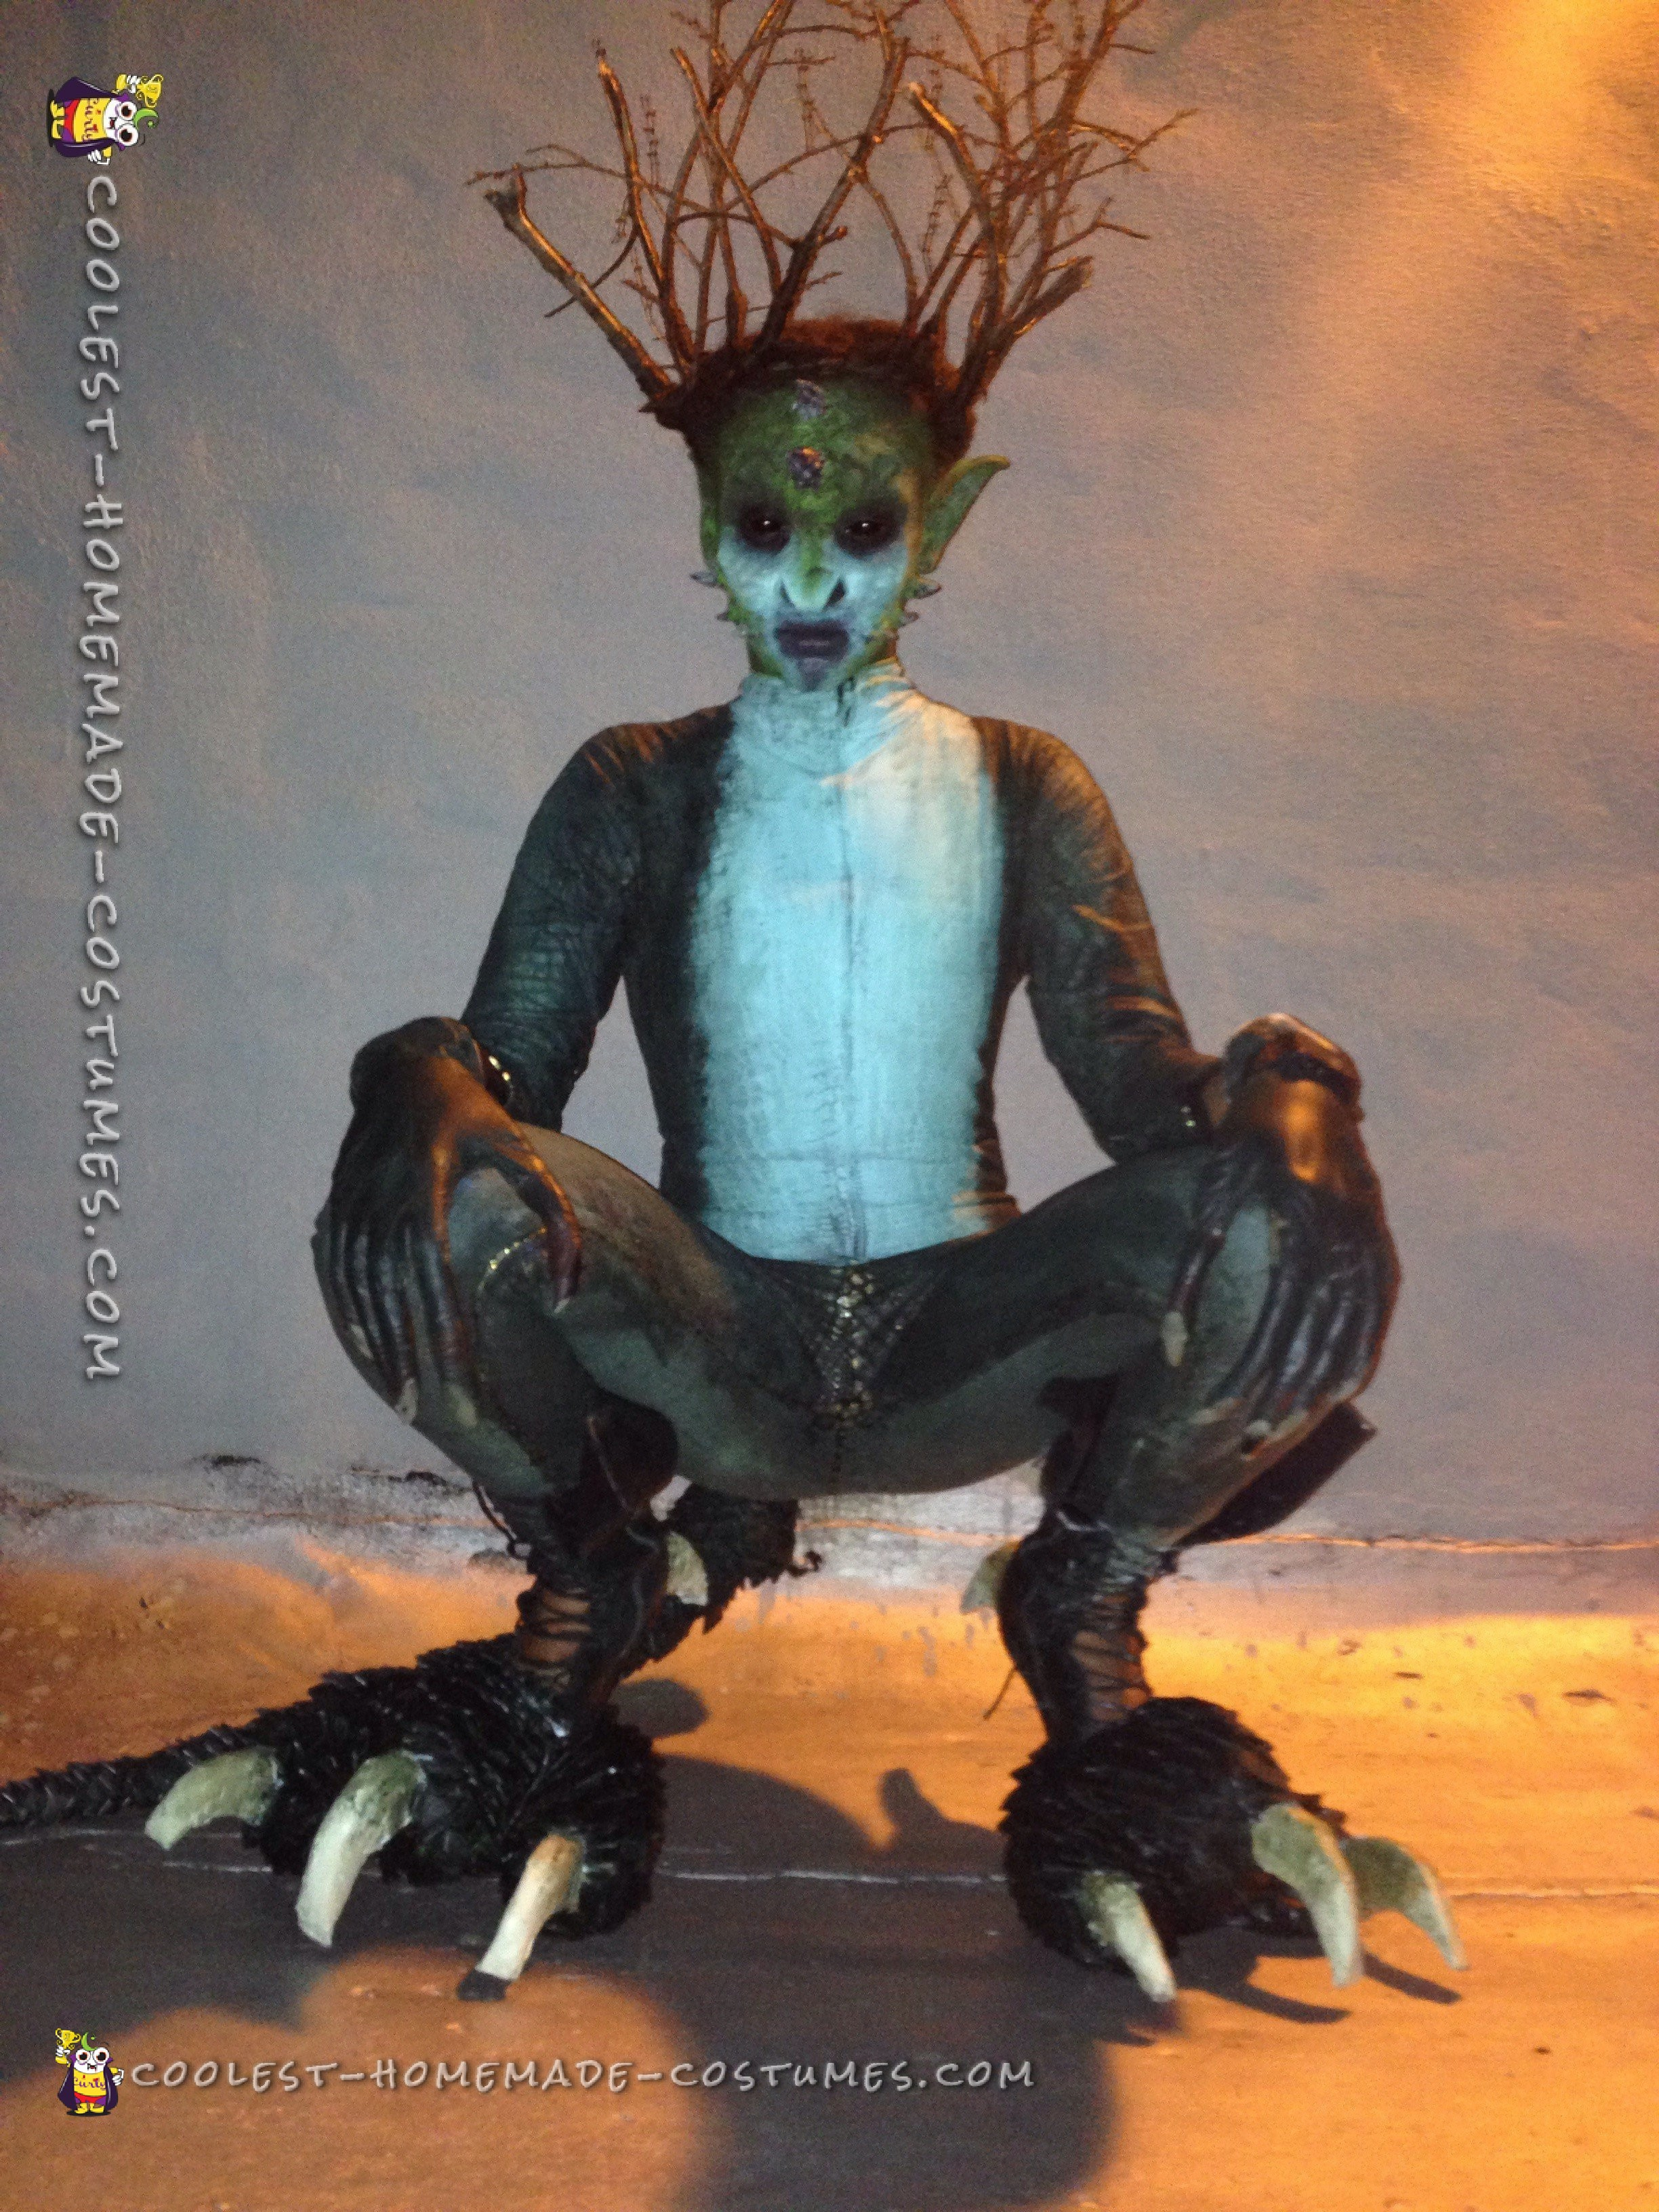 Awesome DIY Reptilian Alien Costume